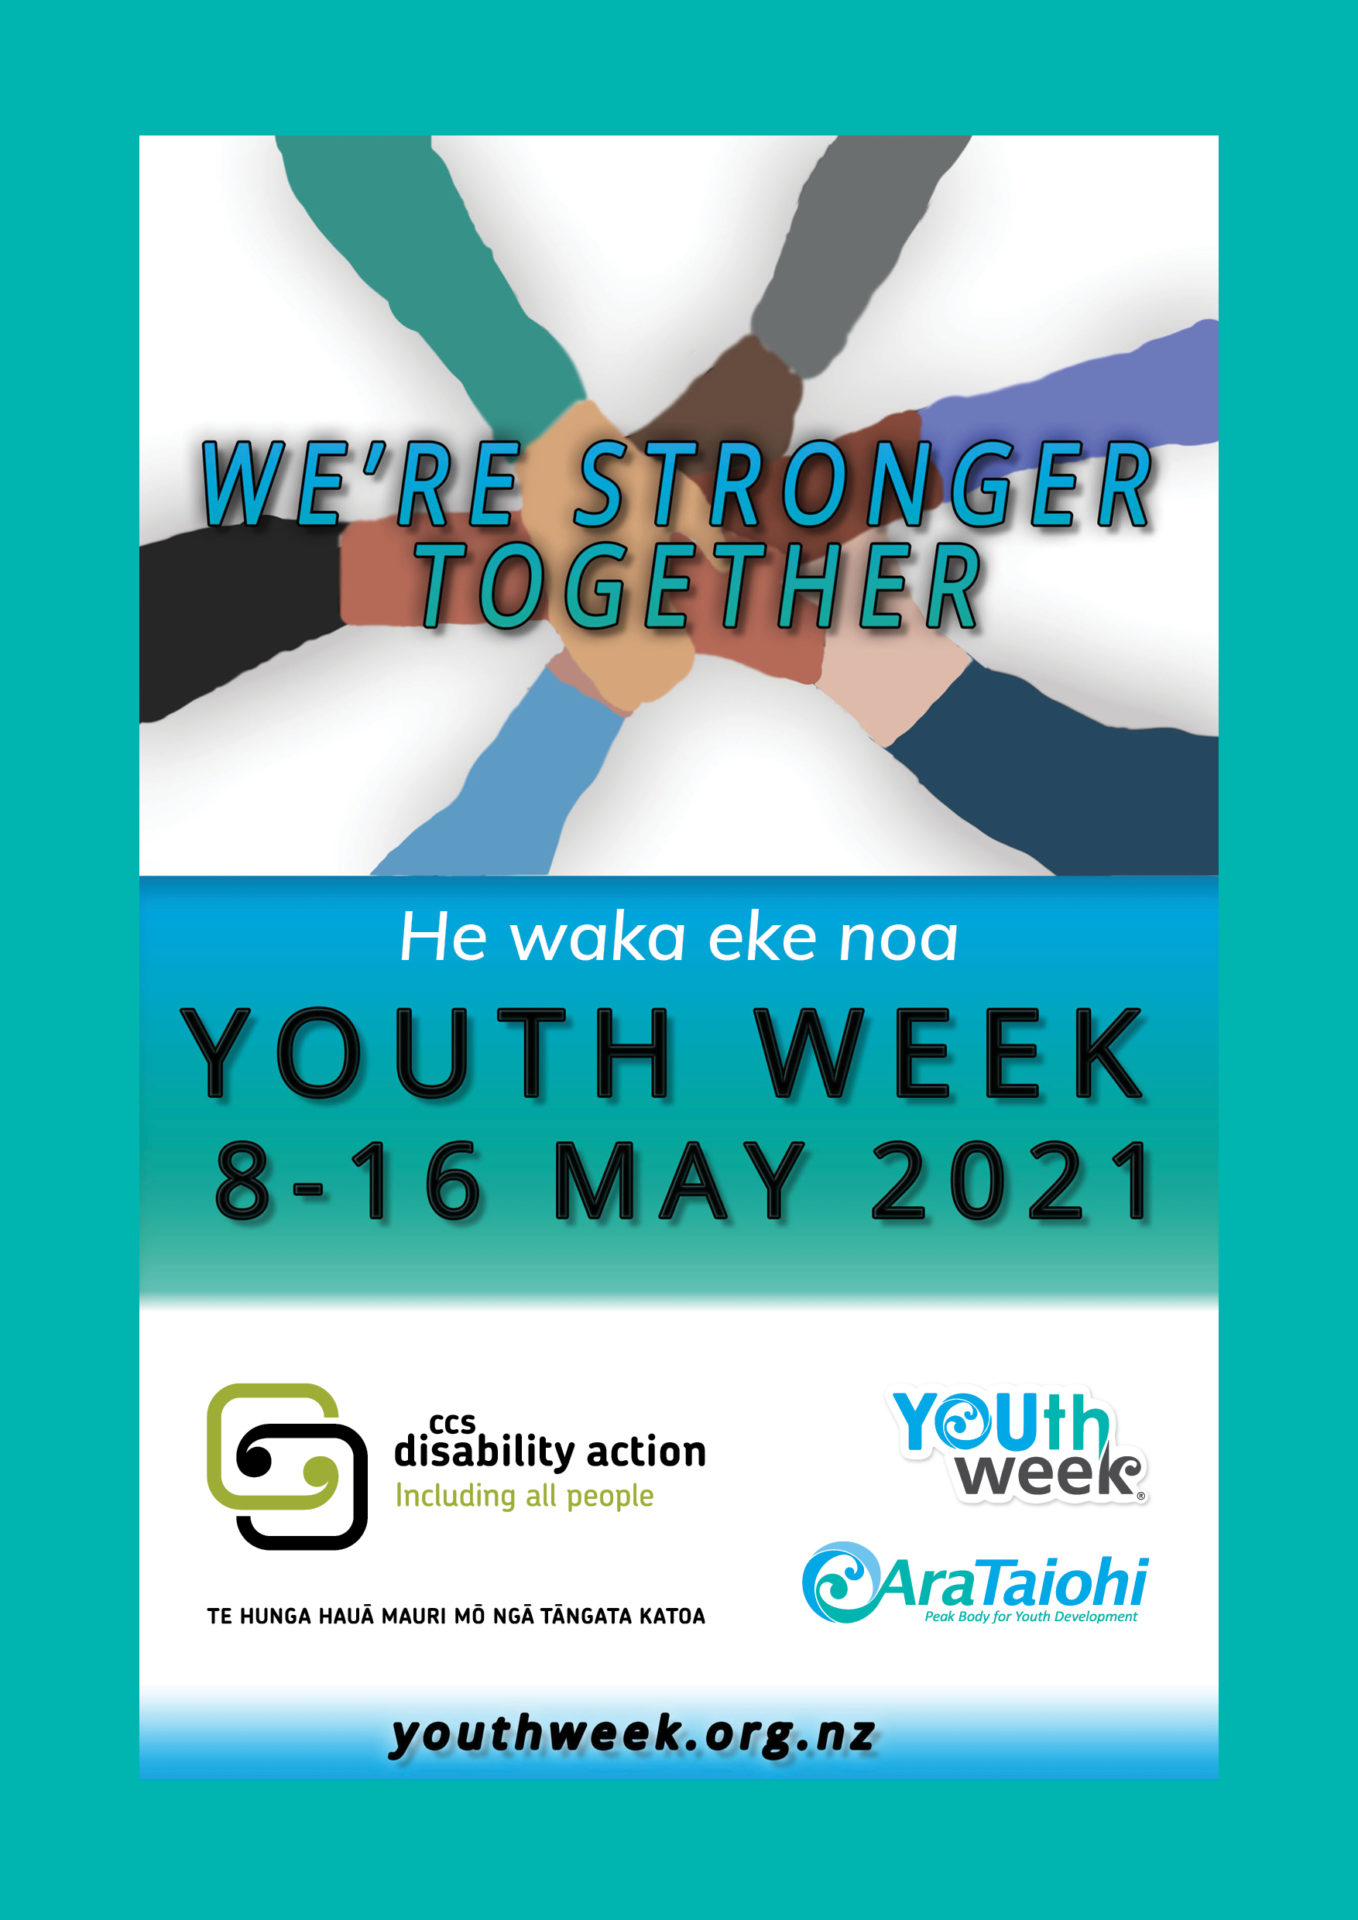 """a circle of Six arms are outstretched so their hands meet in the middle resting on each other. The theme """"We're Stronger Together"""" is  written over the merged hands. The text """"He waka eke noa"""" is written above the Youth Week dates: 8-16 May 2021. Youth Week, Ara Taiohi and CCS Disability Action logos are shown at the bottom."""